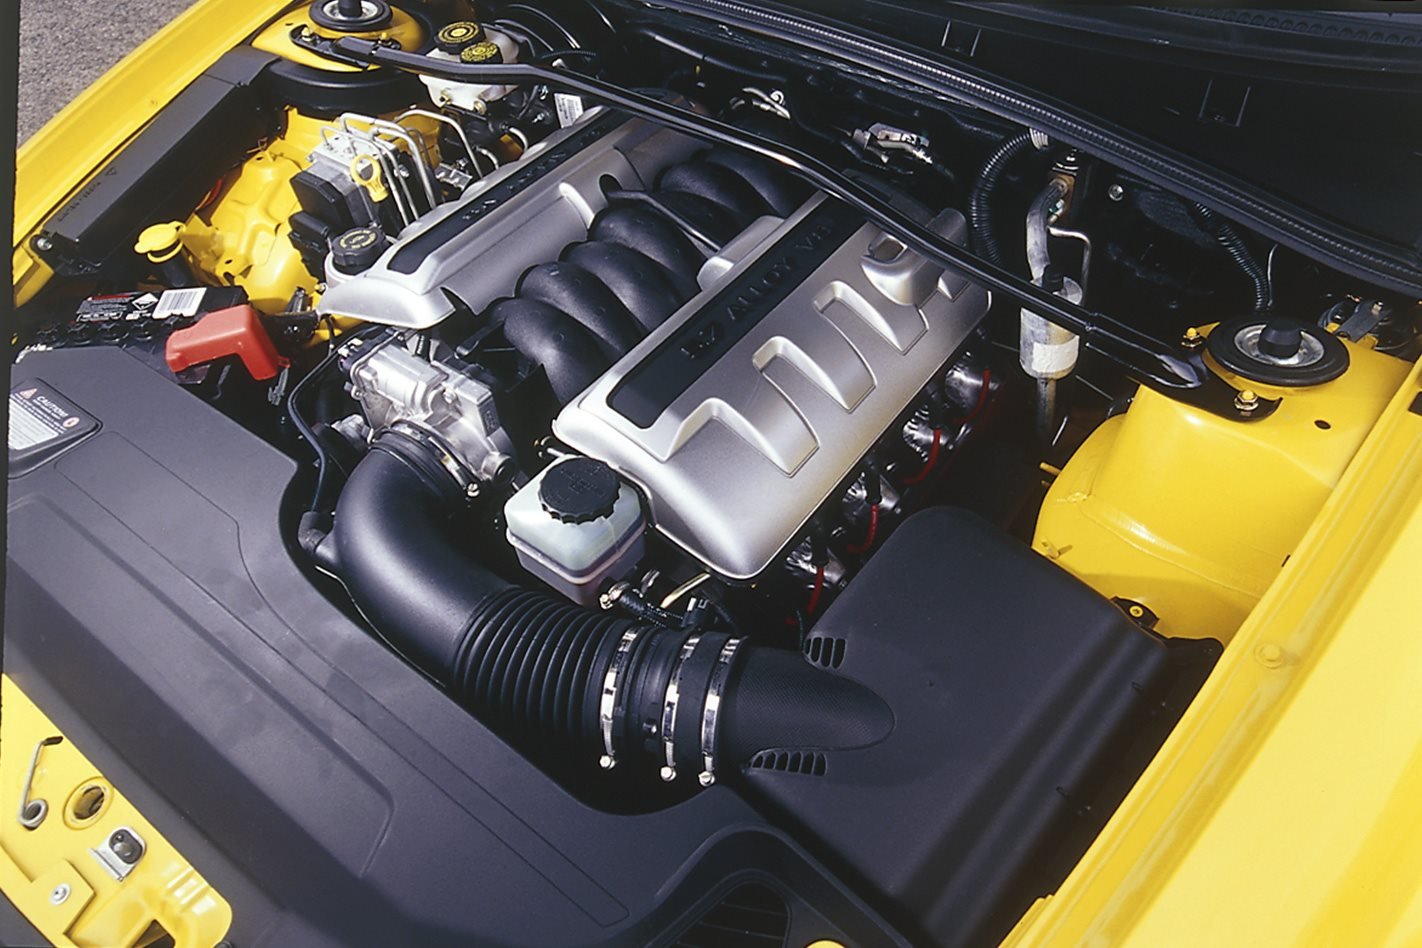 2004 Holden Monaro VZ engine